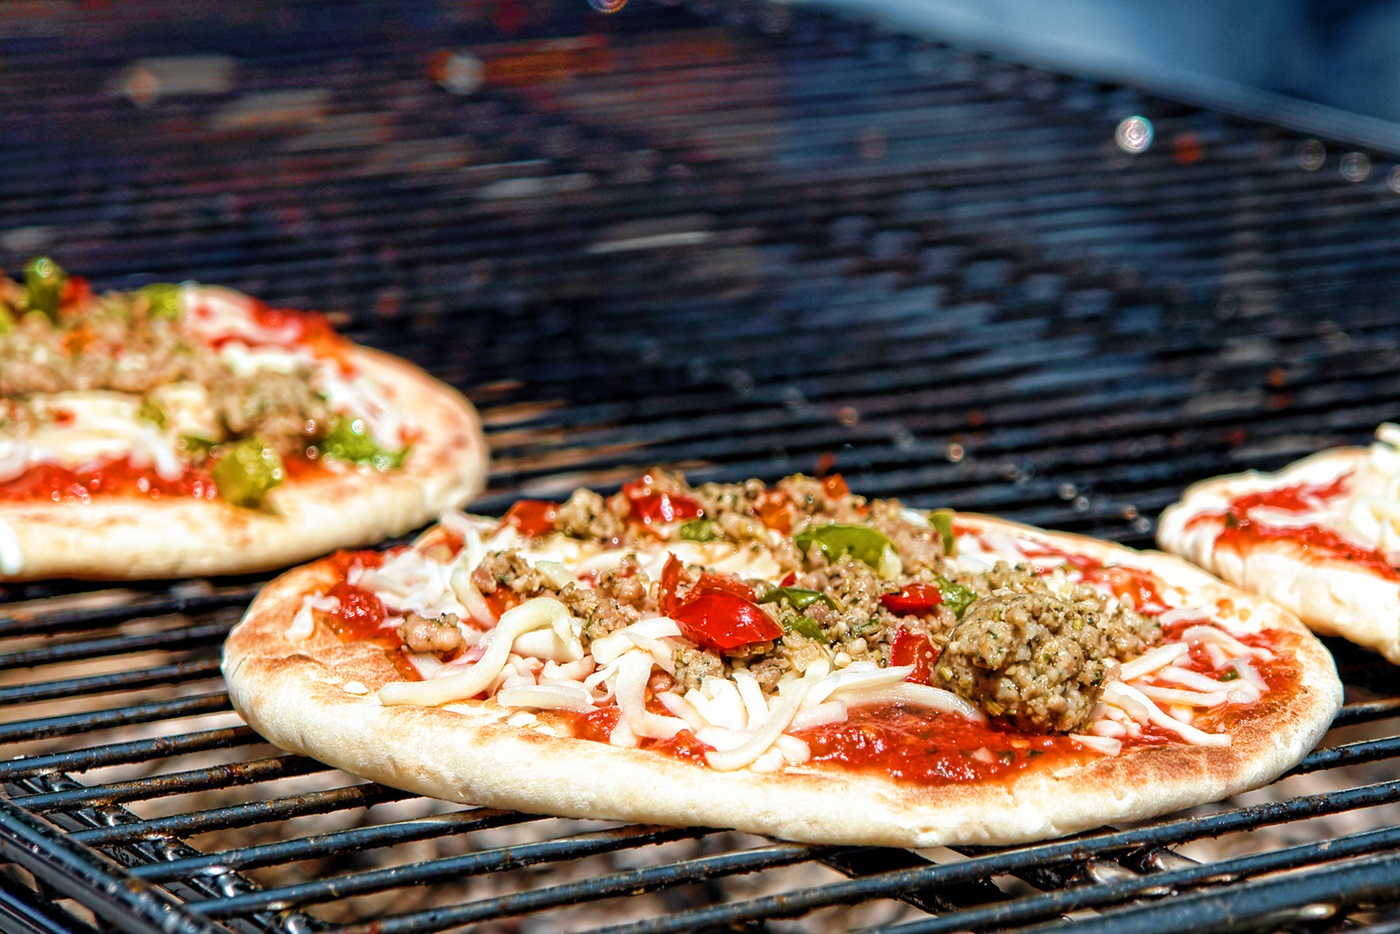 How to Grill Pizza plus a Chef-created Vegan Grilled Pizza Recipe